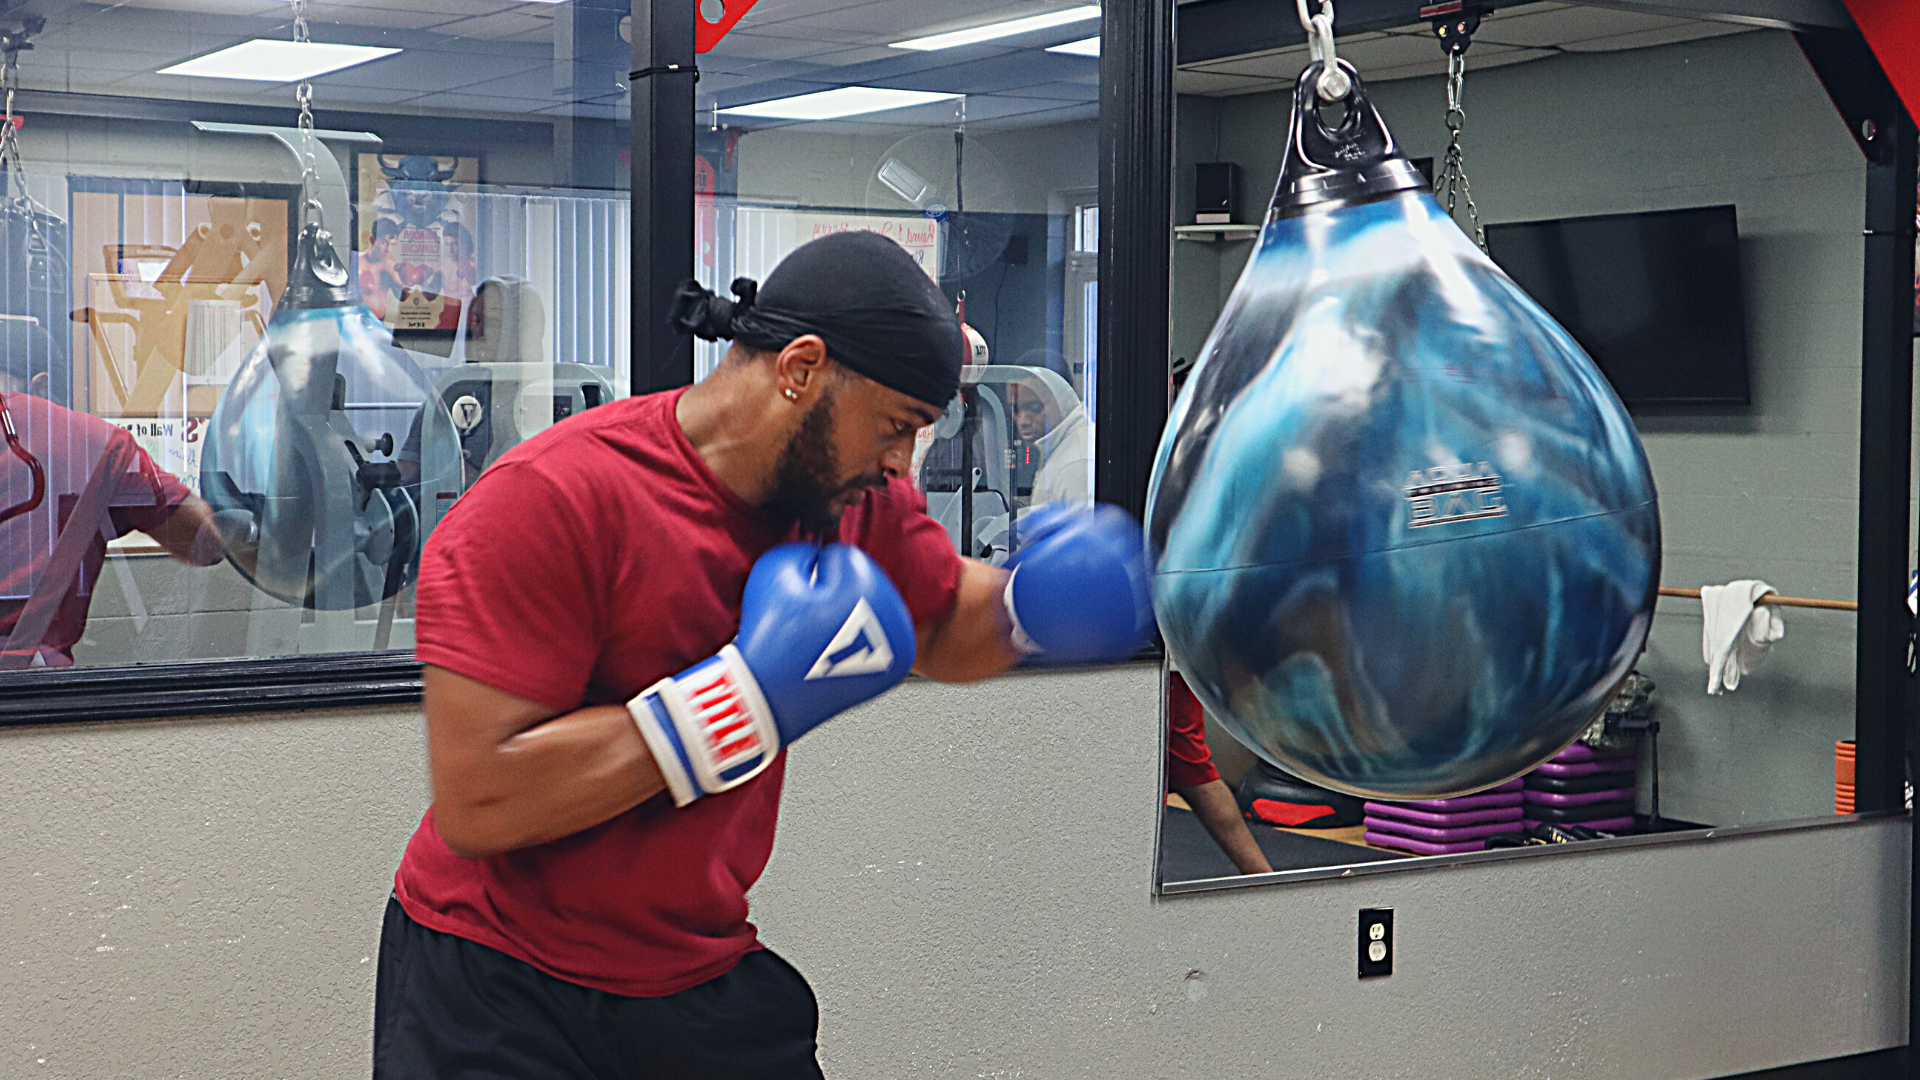 Young man boxing using atp energy system